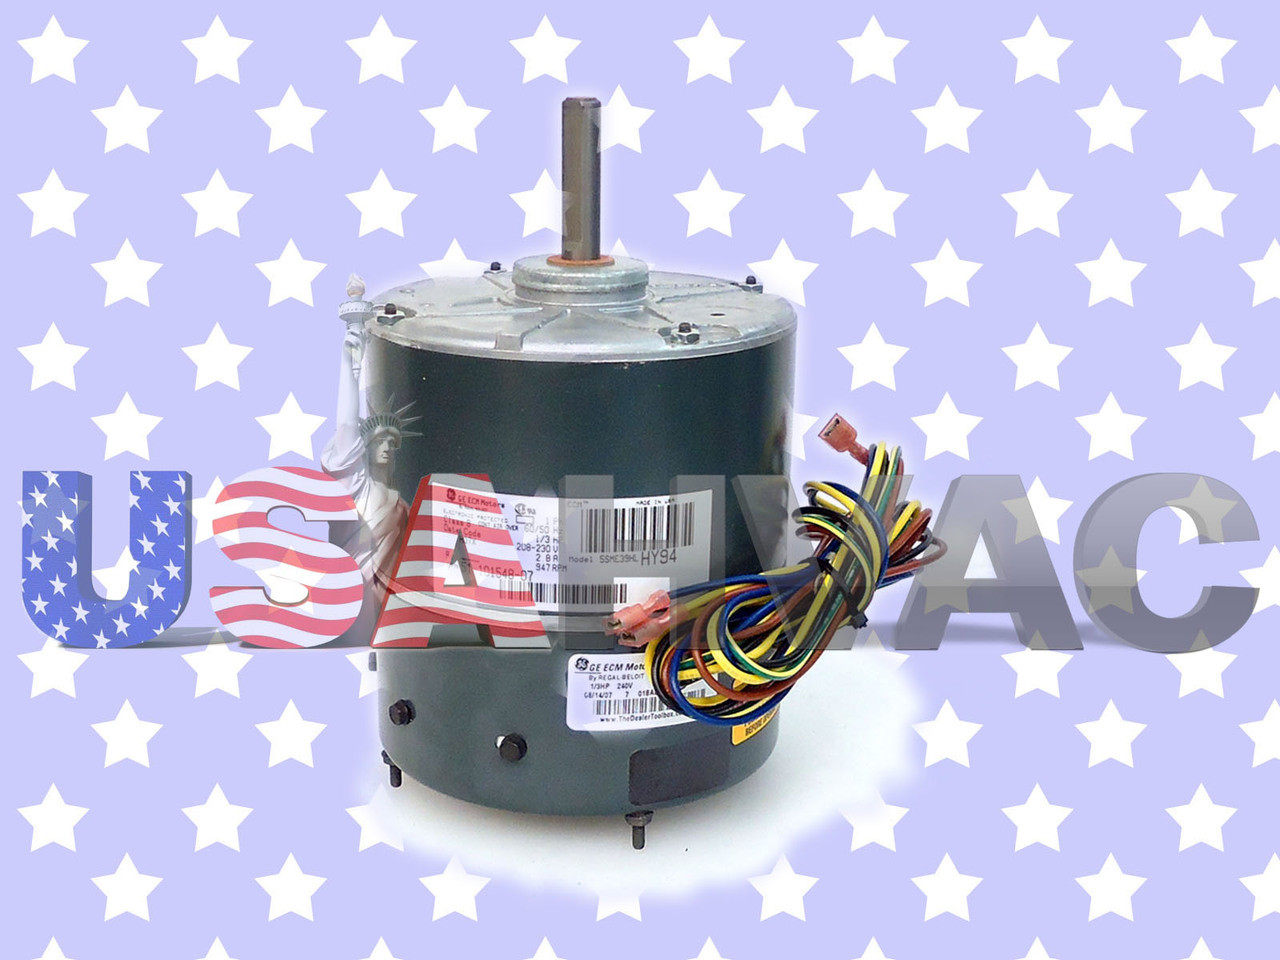 51-101548-07, 5SME39HLHY94 - OEM Ruud Rheem Weather King Furnace Blower  Motor